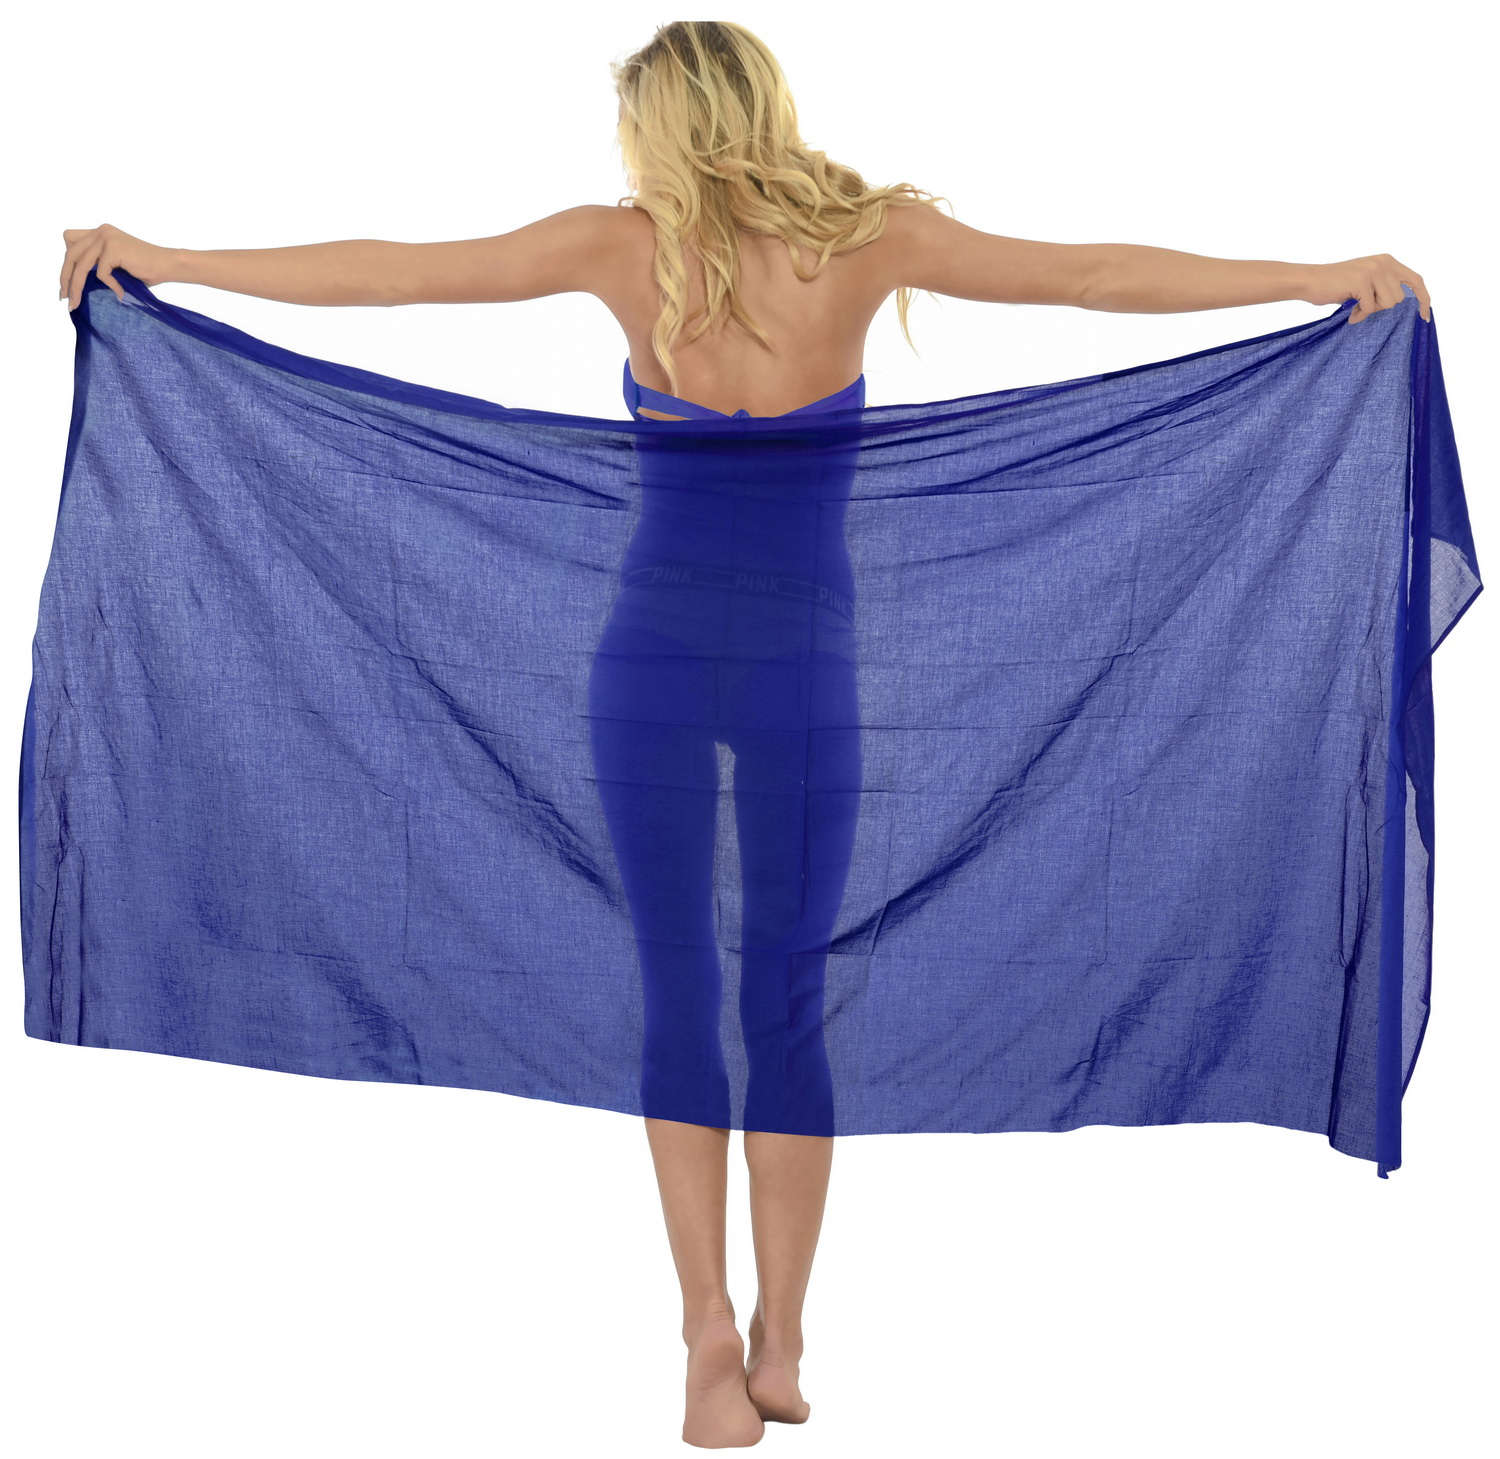 100% Cotton Women's Basic SWIMSUIT Bikini SWIMWEAR Beach Cover up Sarong US 2X